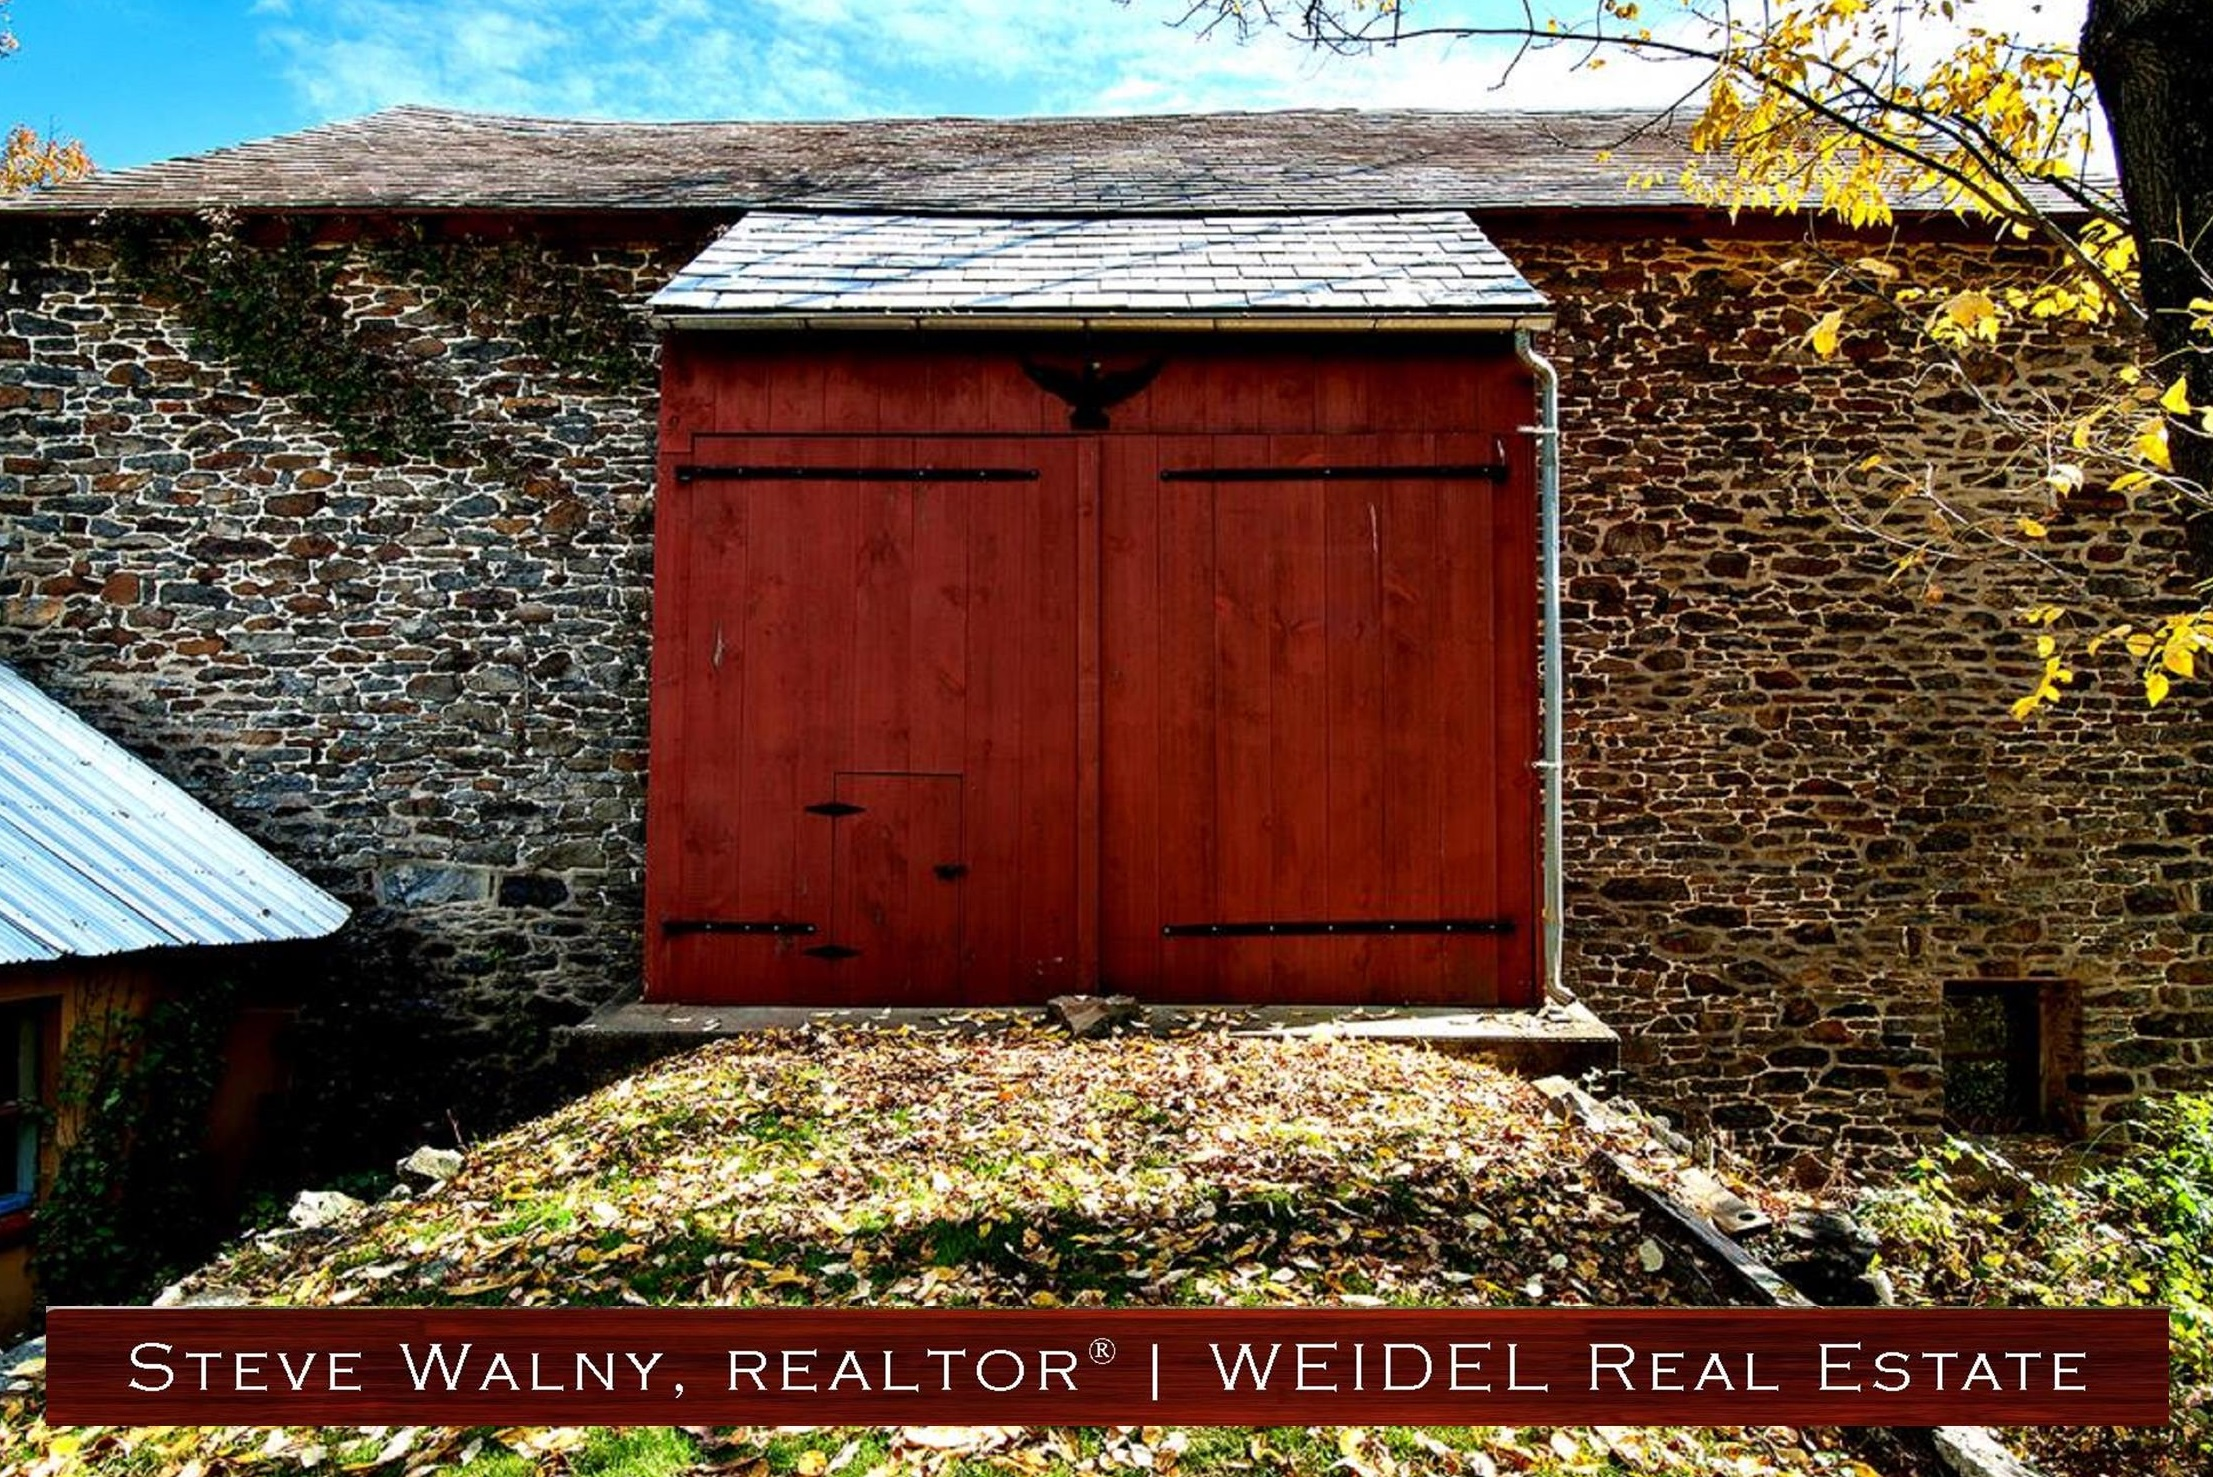 Bucks County Bank Barn | Stone Barn Bucks County | Doylestown Realtor | Doylestown Realtors | New Hope Realtor | New Hope Realtors | Weidel Real Estate